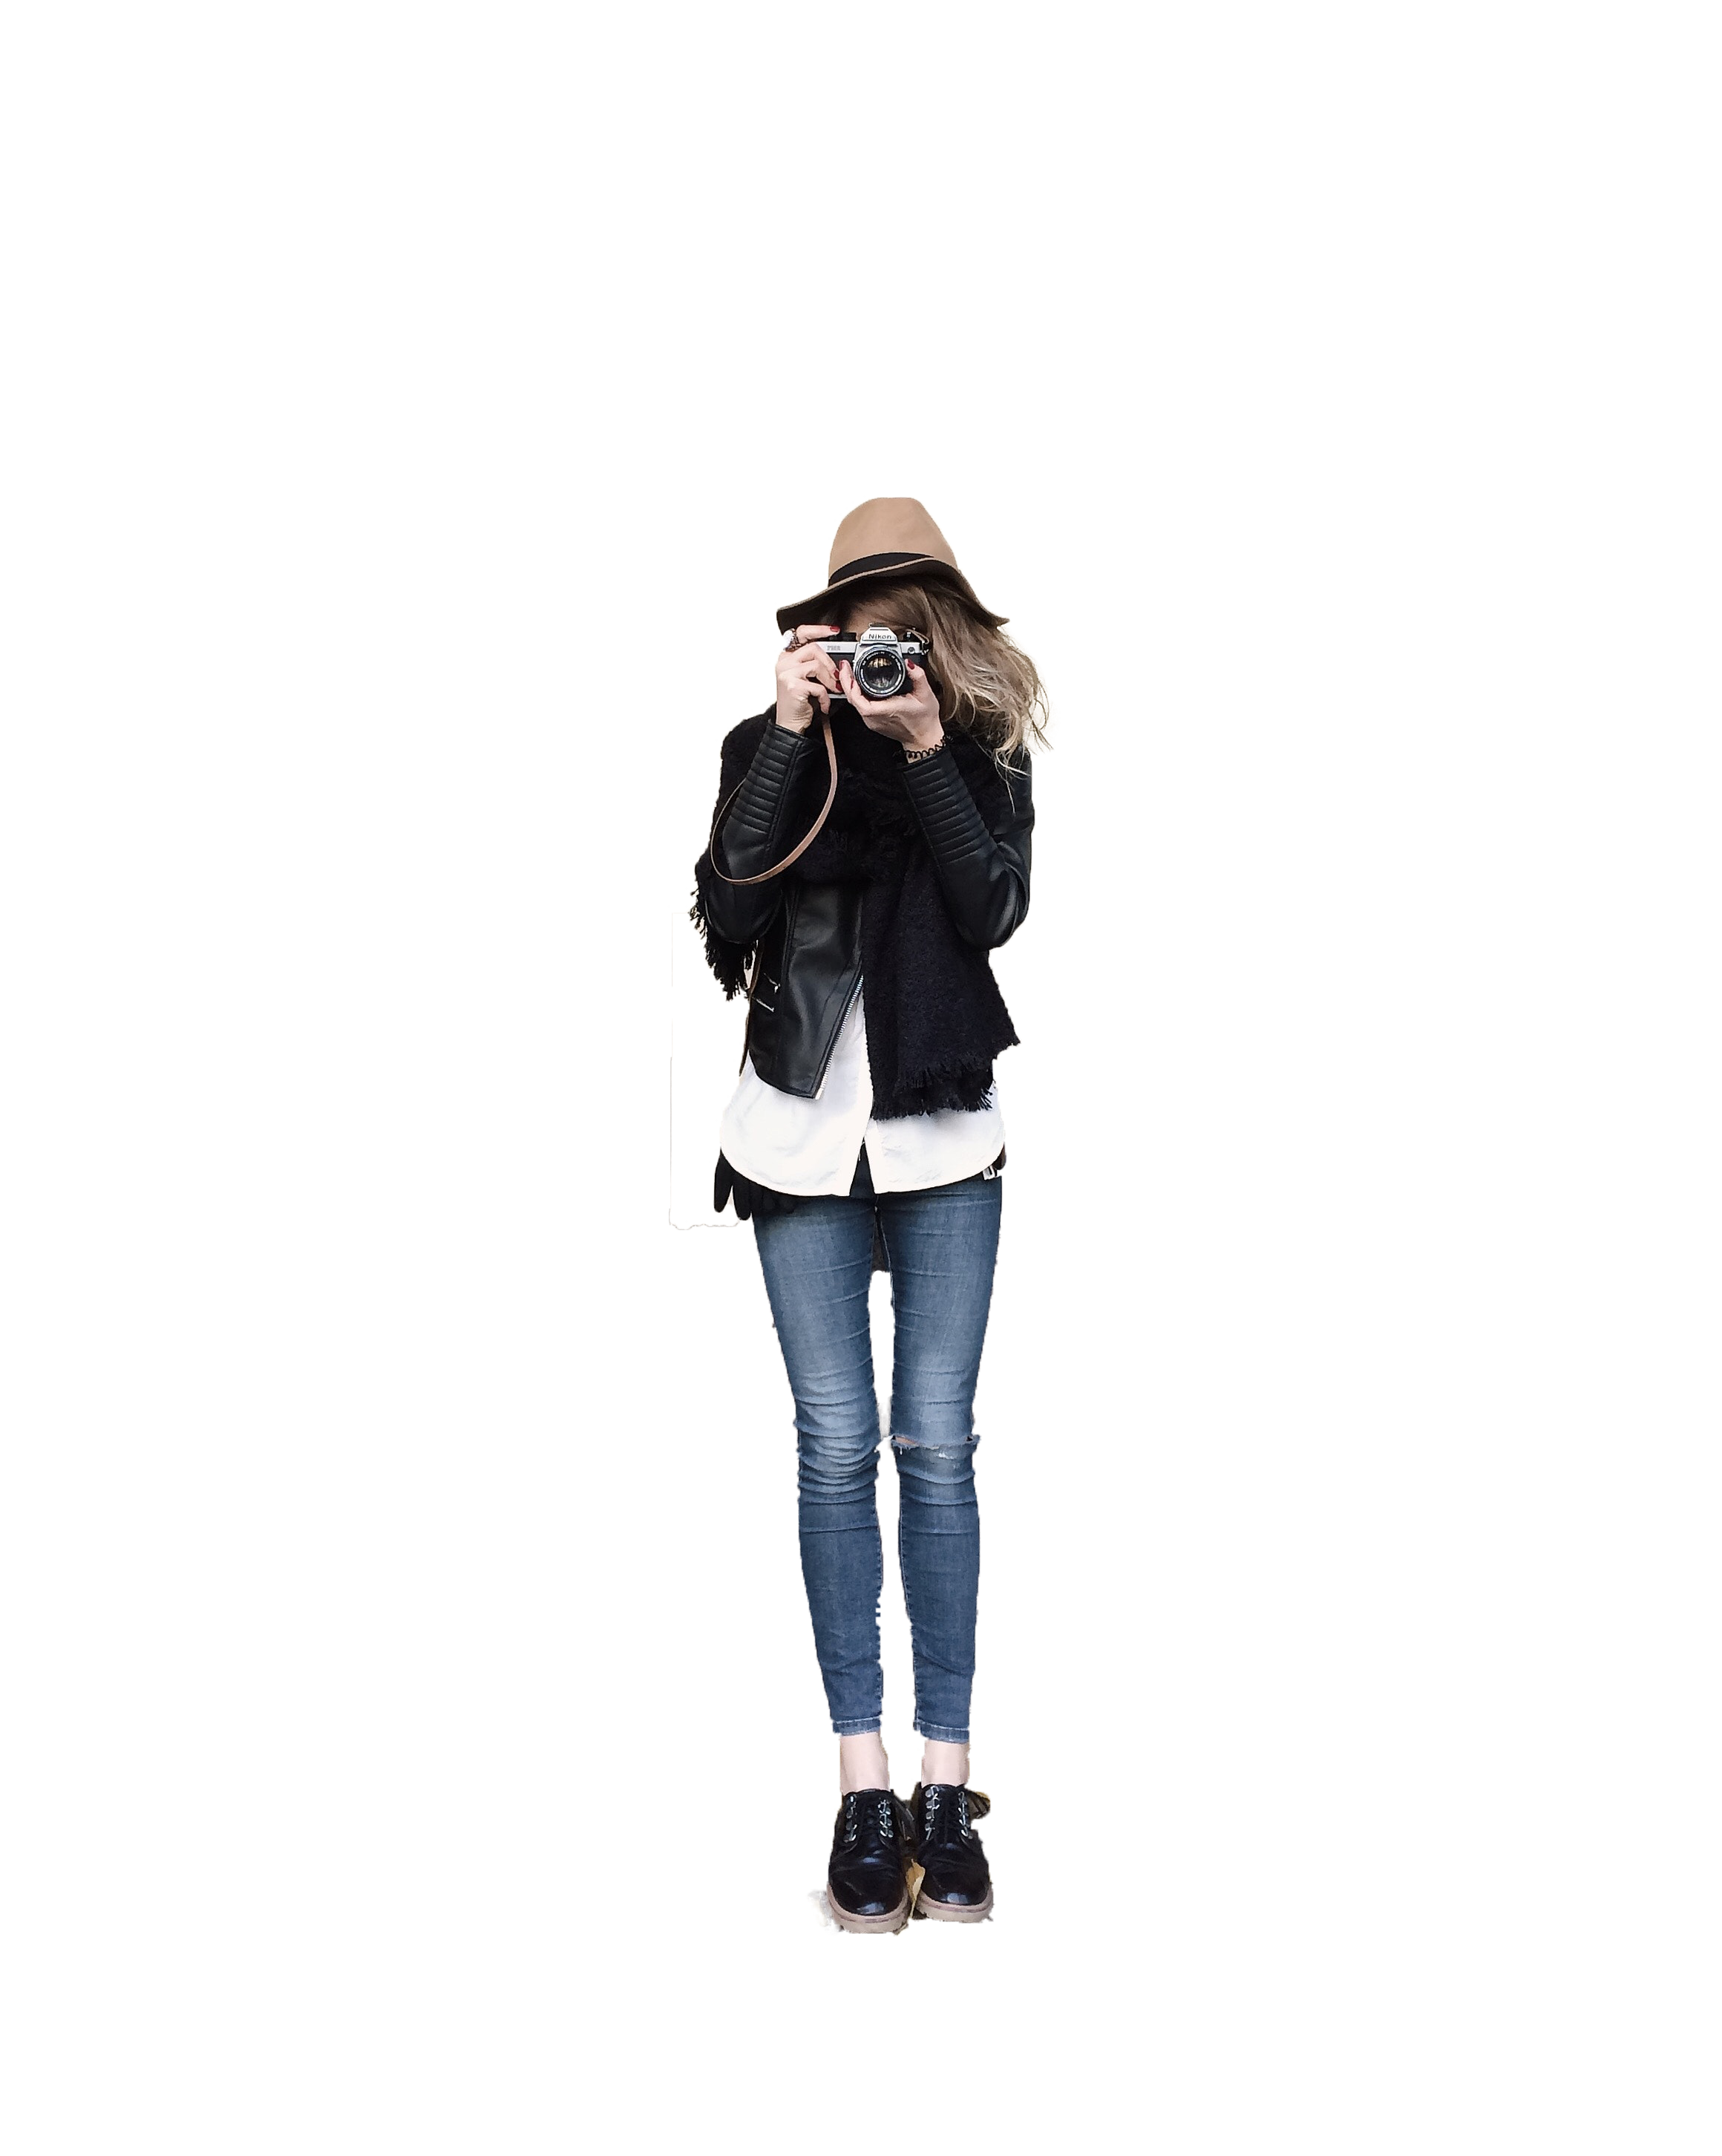 Girl with camera ready to click with transparent background PNG